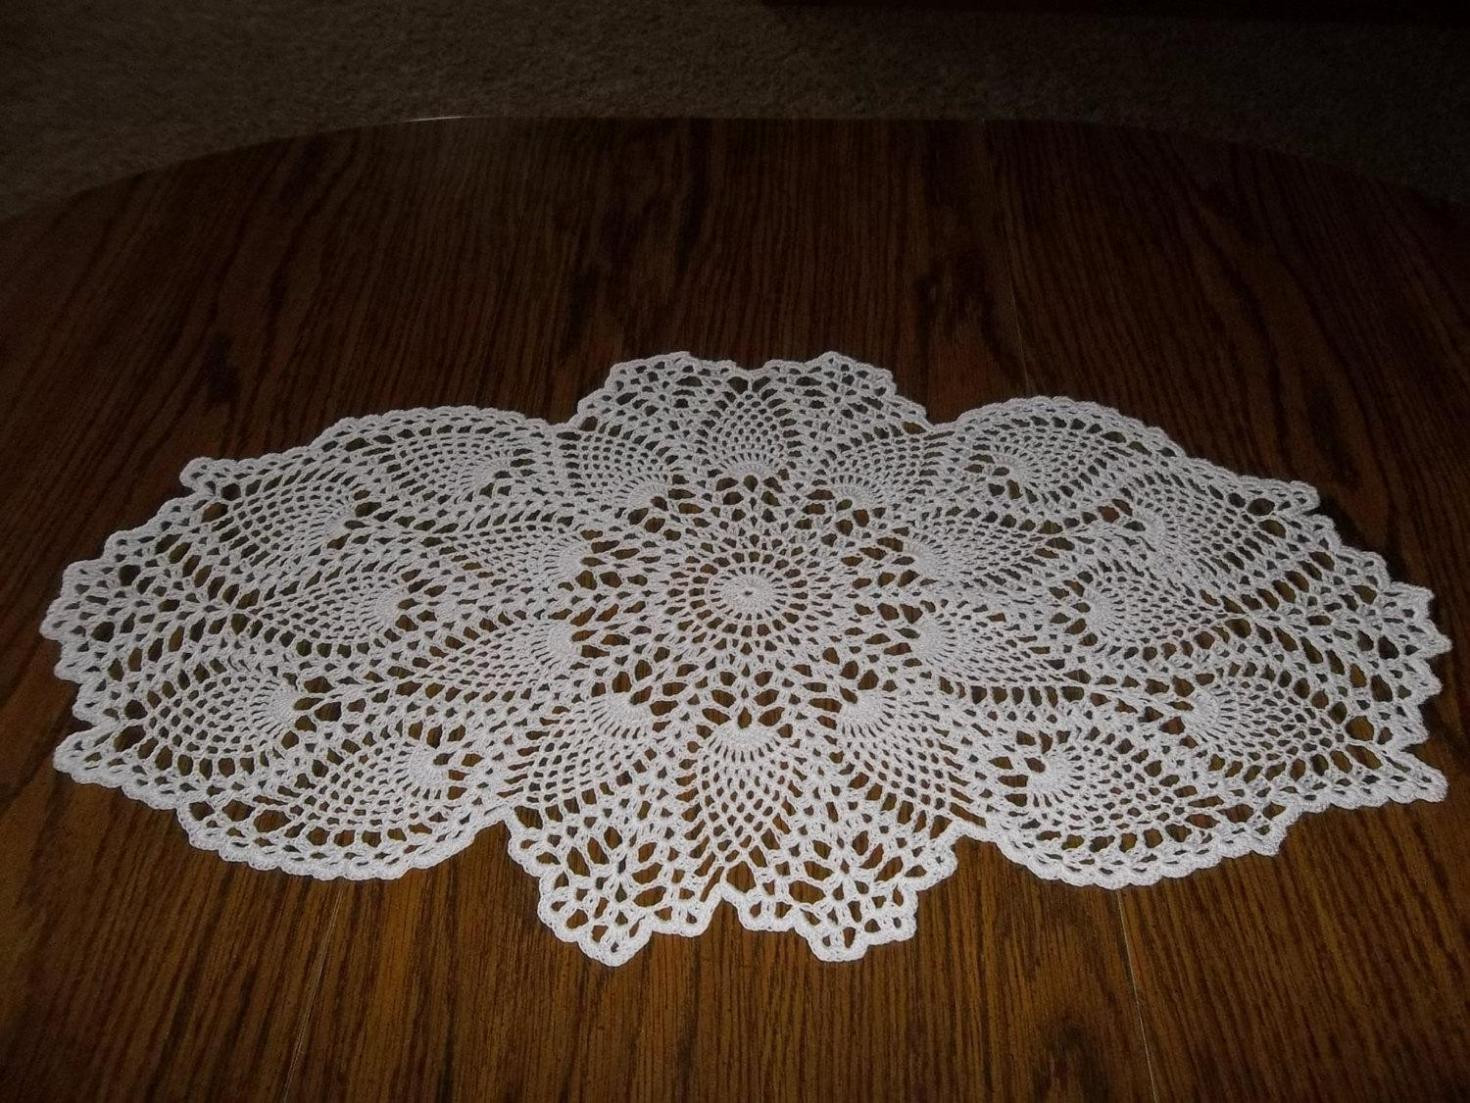 Unique Just for You 17 Crochet Table Runner Patterns for Crochet Table Runners Of Gorgeous 50 Models Crochet Table Runners